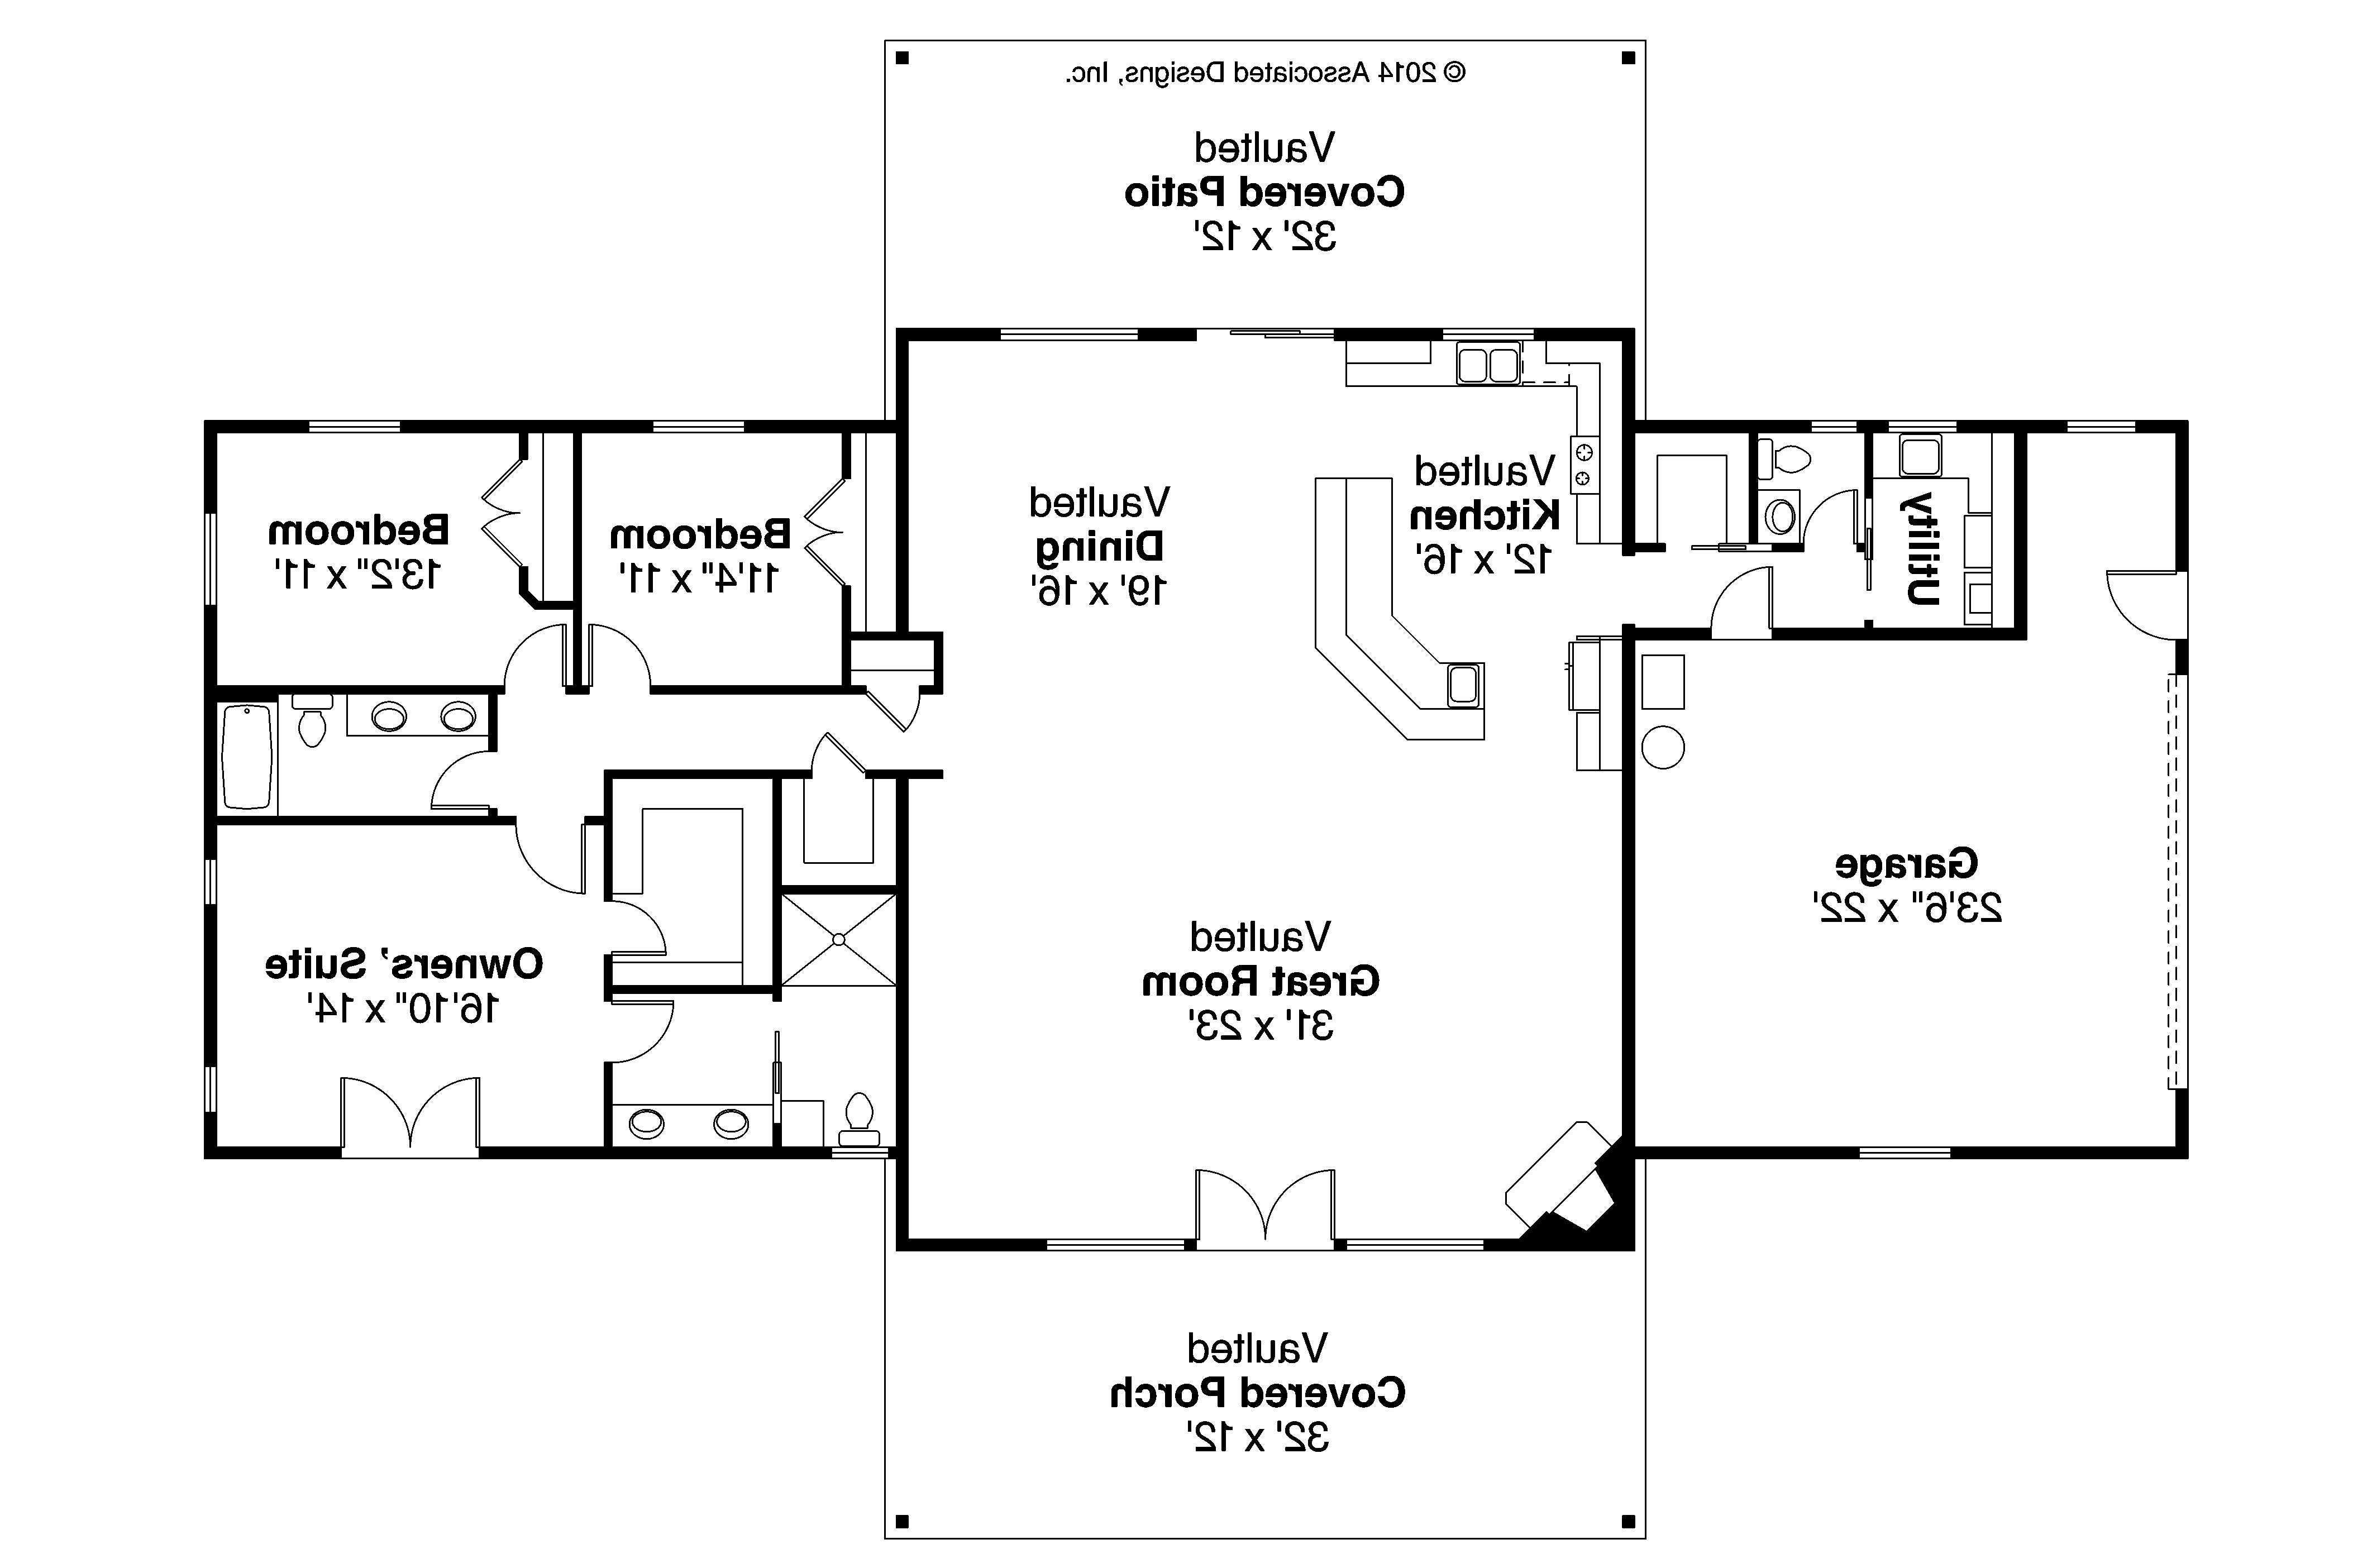 19 Images Symmetrical Ranch House Plans on 28x36 house plans, 28x50 ranch house floor plans, 24x48 house plans, 24x40 house plans, open floor plans, simple ranch floor plans,